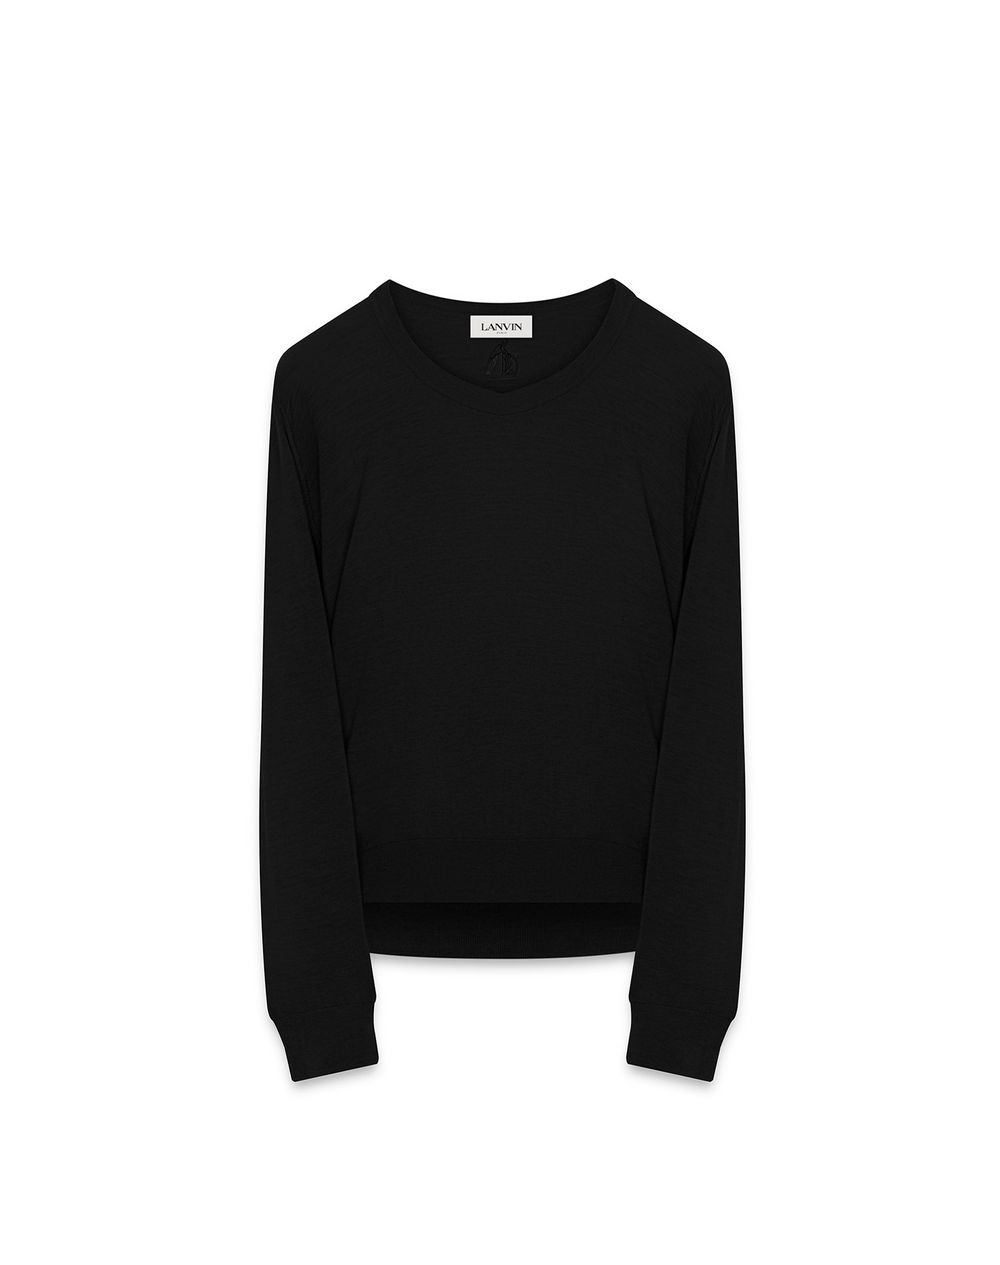 FINE WOOL AND COTTON SWEATER - Lanvin